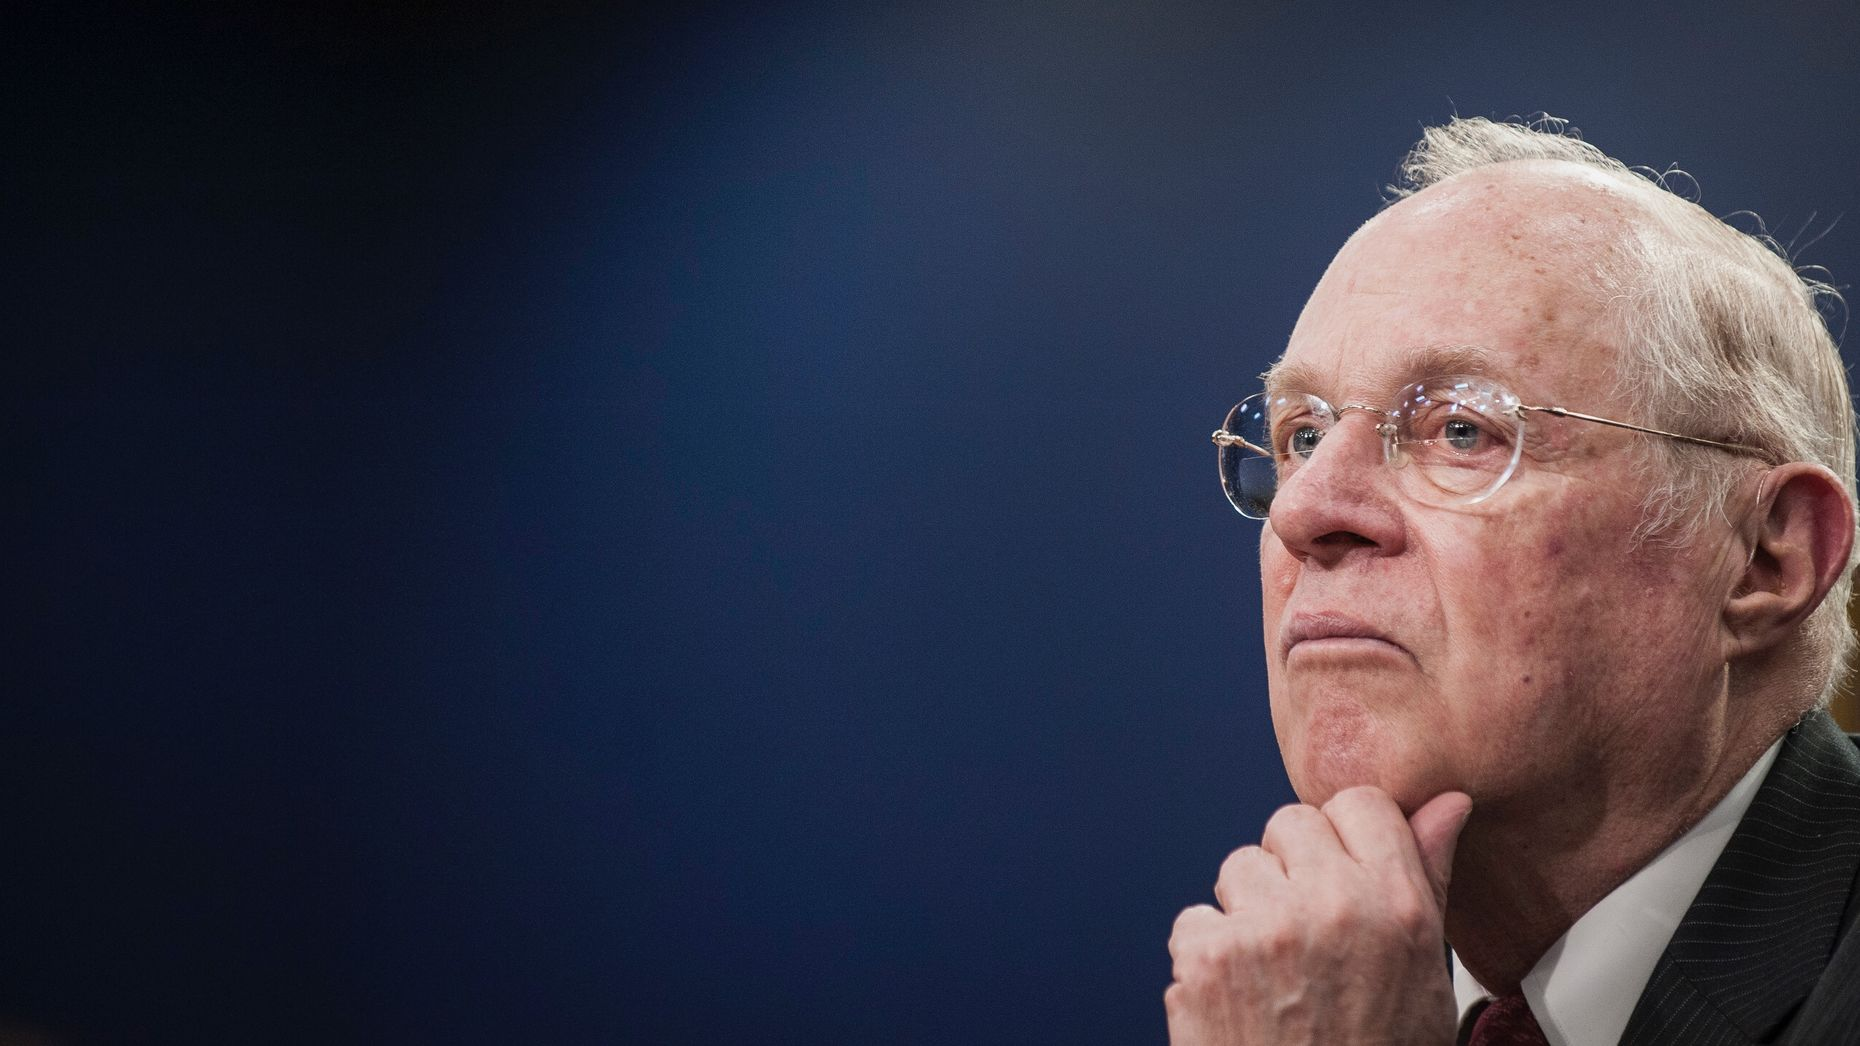 Supreme Court Justice Kennedy. Photo by Bloomberg.